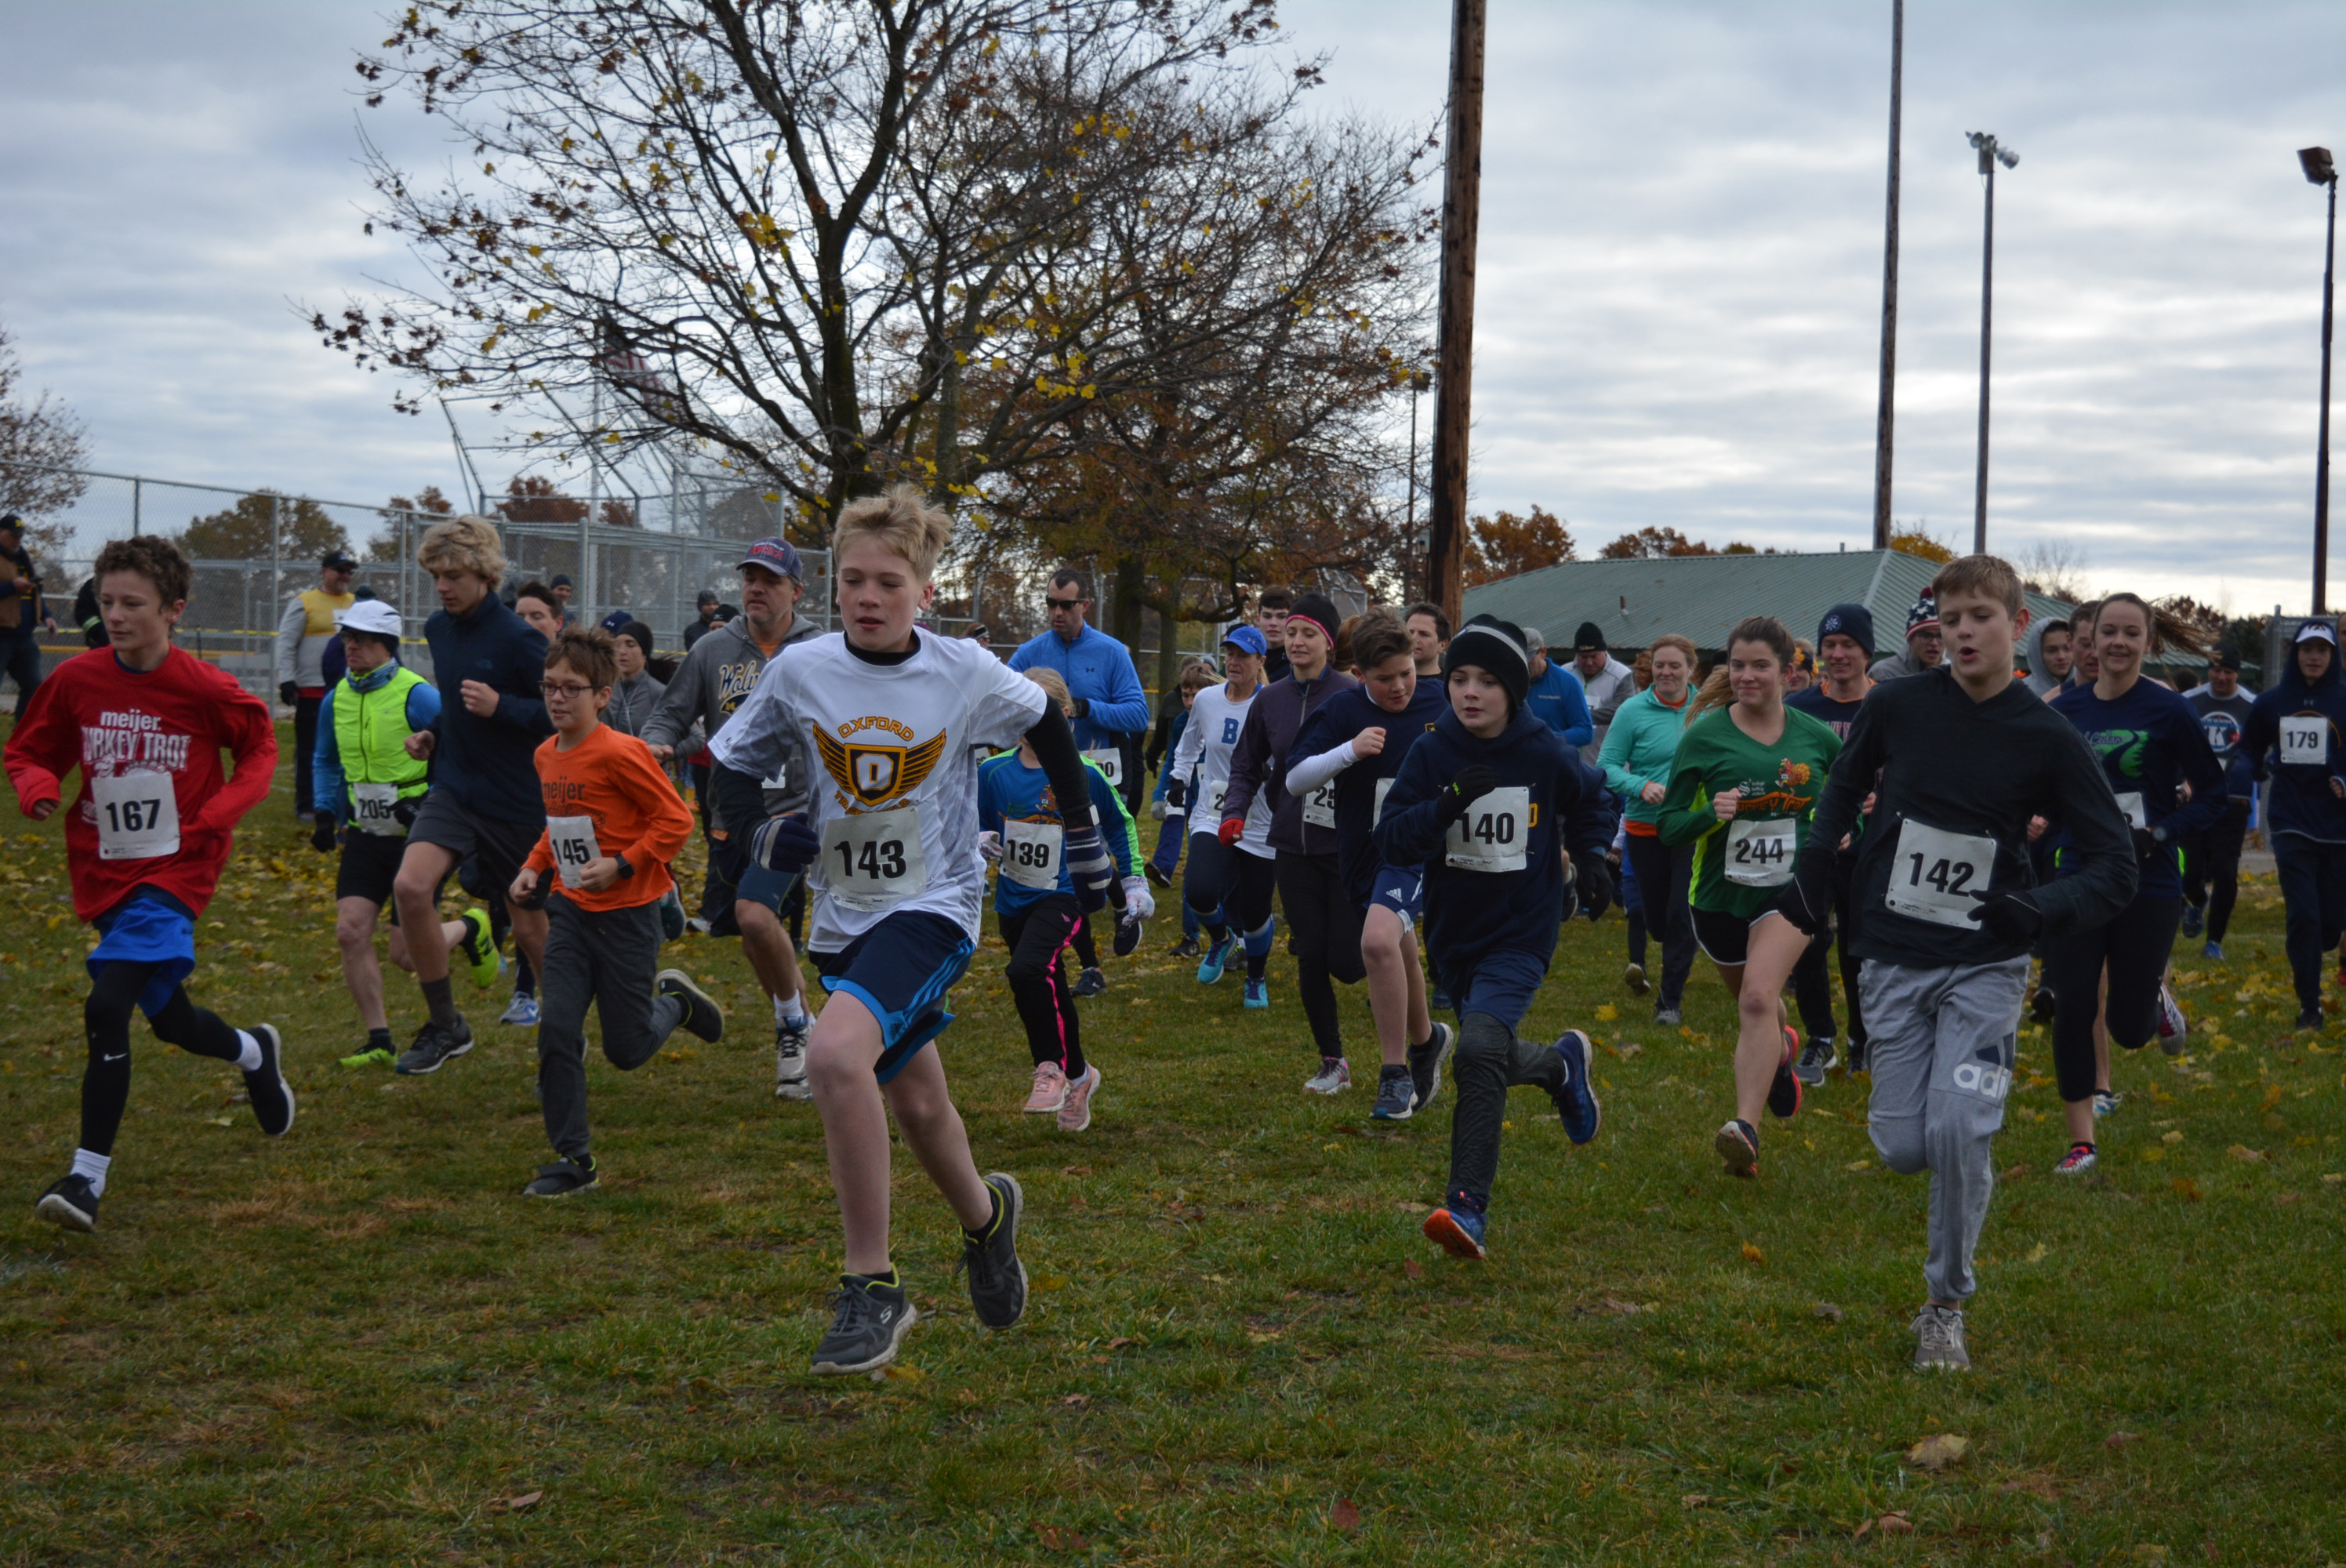 The Turkey Trotters take off from the starting line. Photo by C.J. Carnacchio.